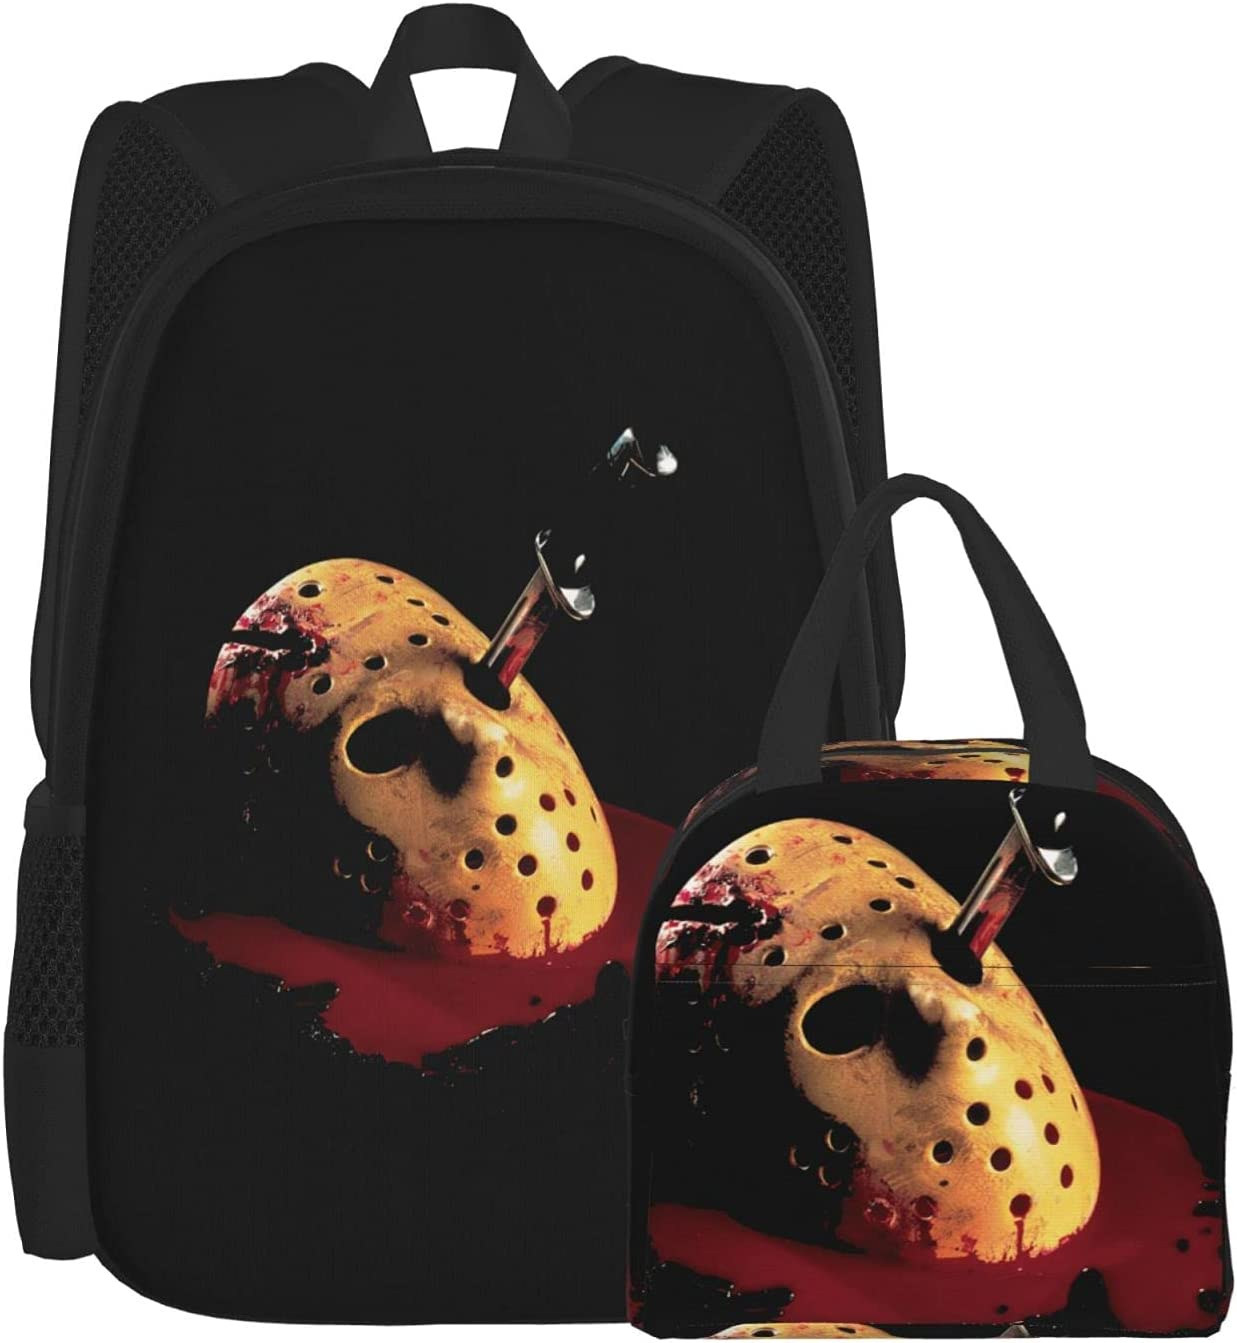 Friday The 13th Lunch Bag Unisex Pack Backpack And 2021 model Max 48% OFF Combination